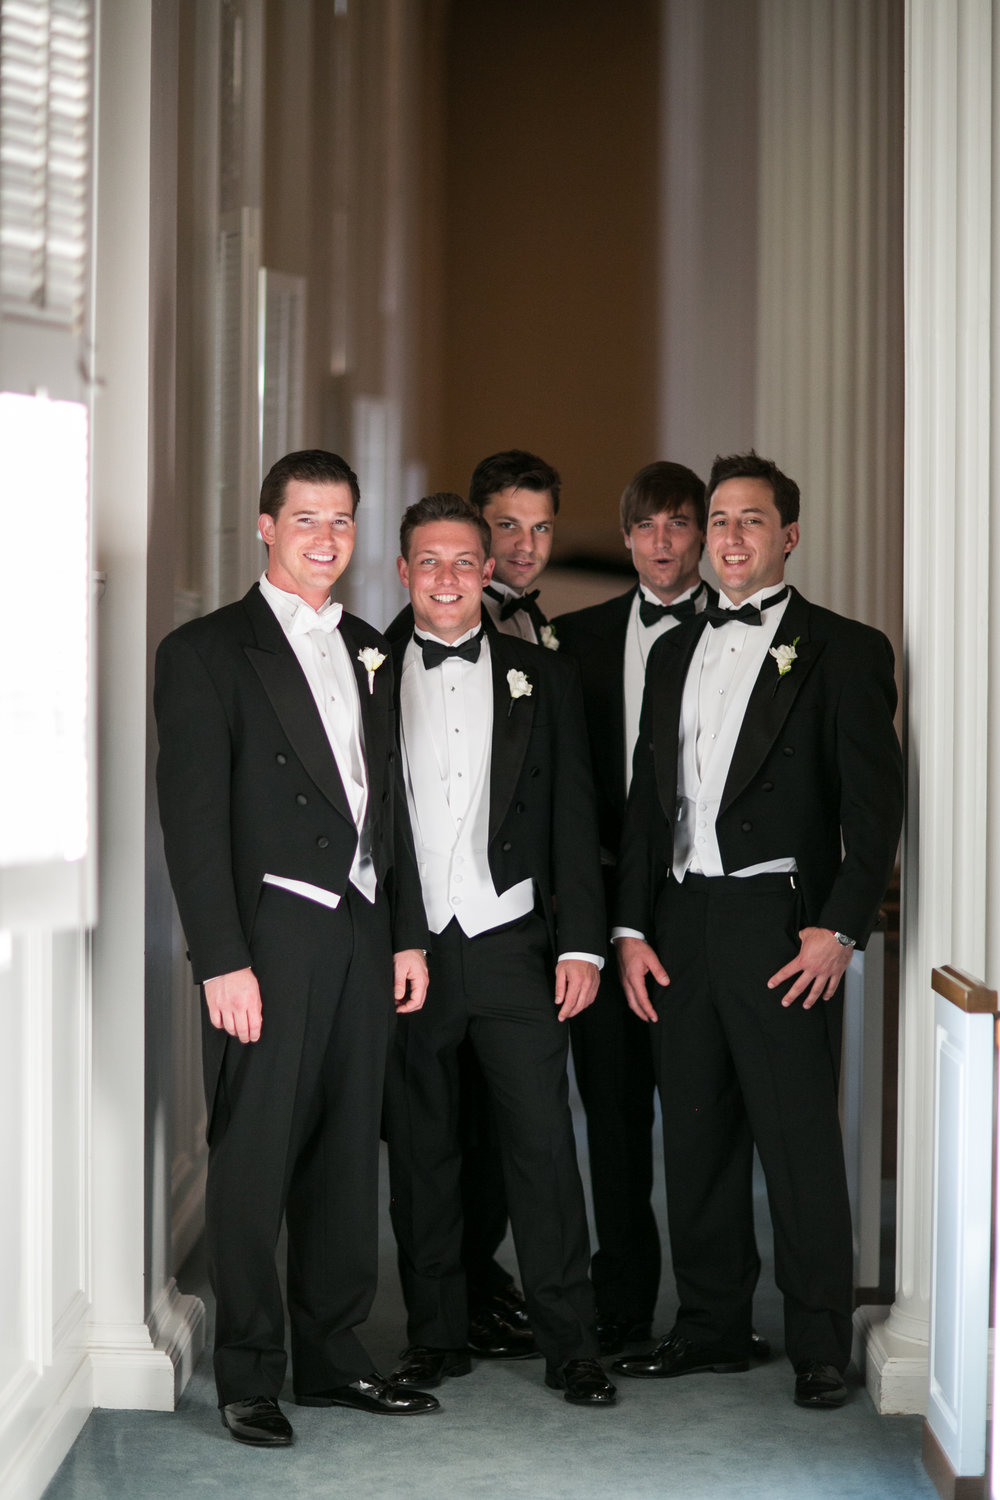 Groomsmen Details - Dallas, Tx - Spring Wedding - Julian Leaver Events